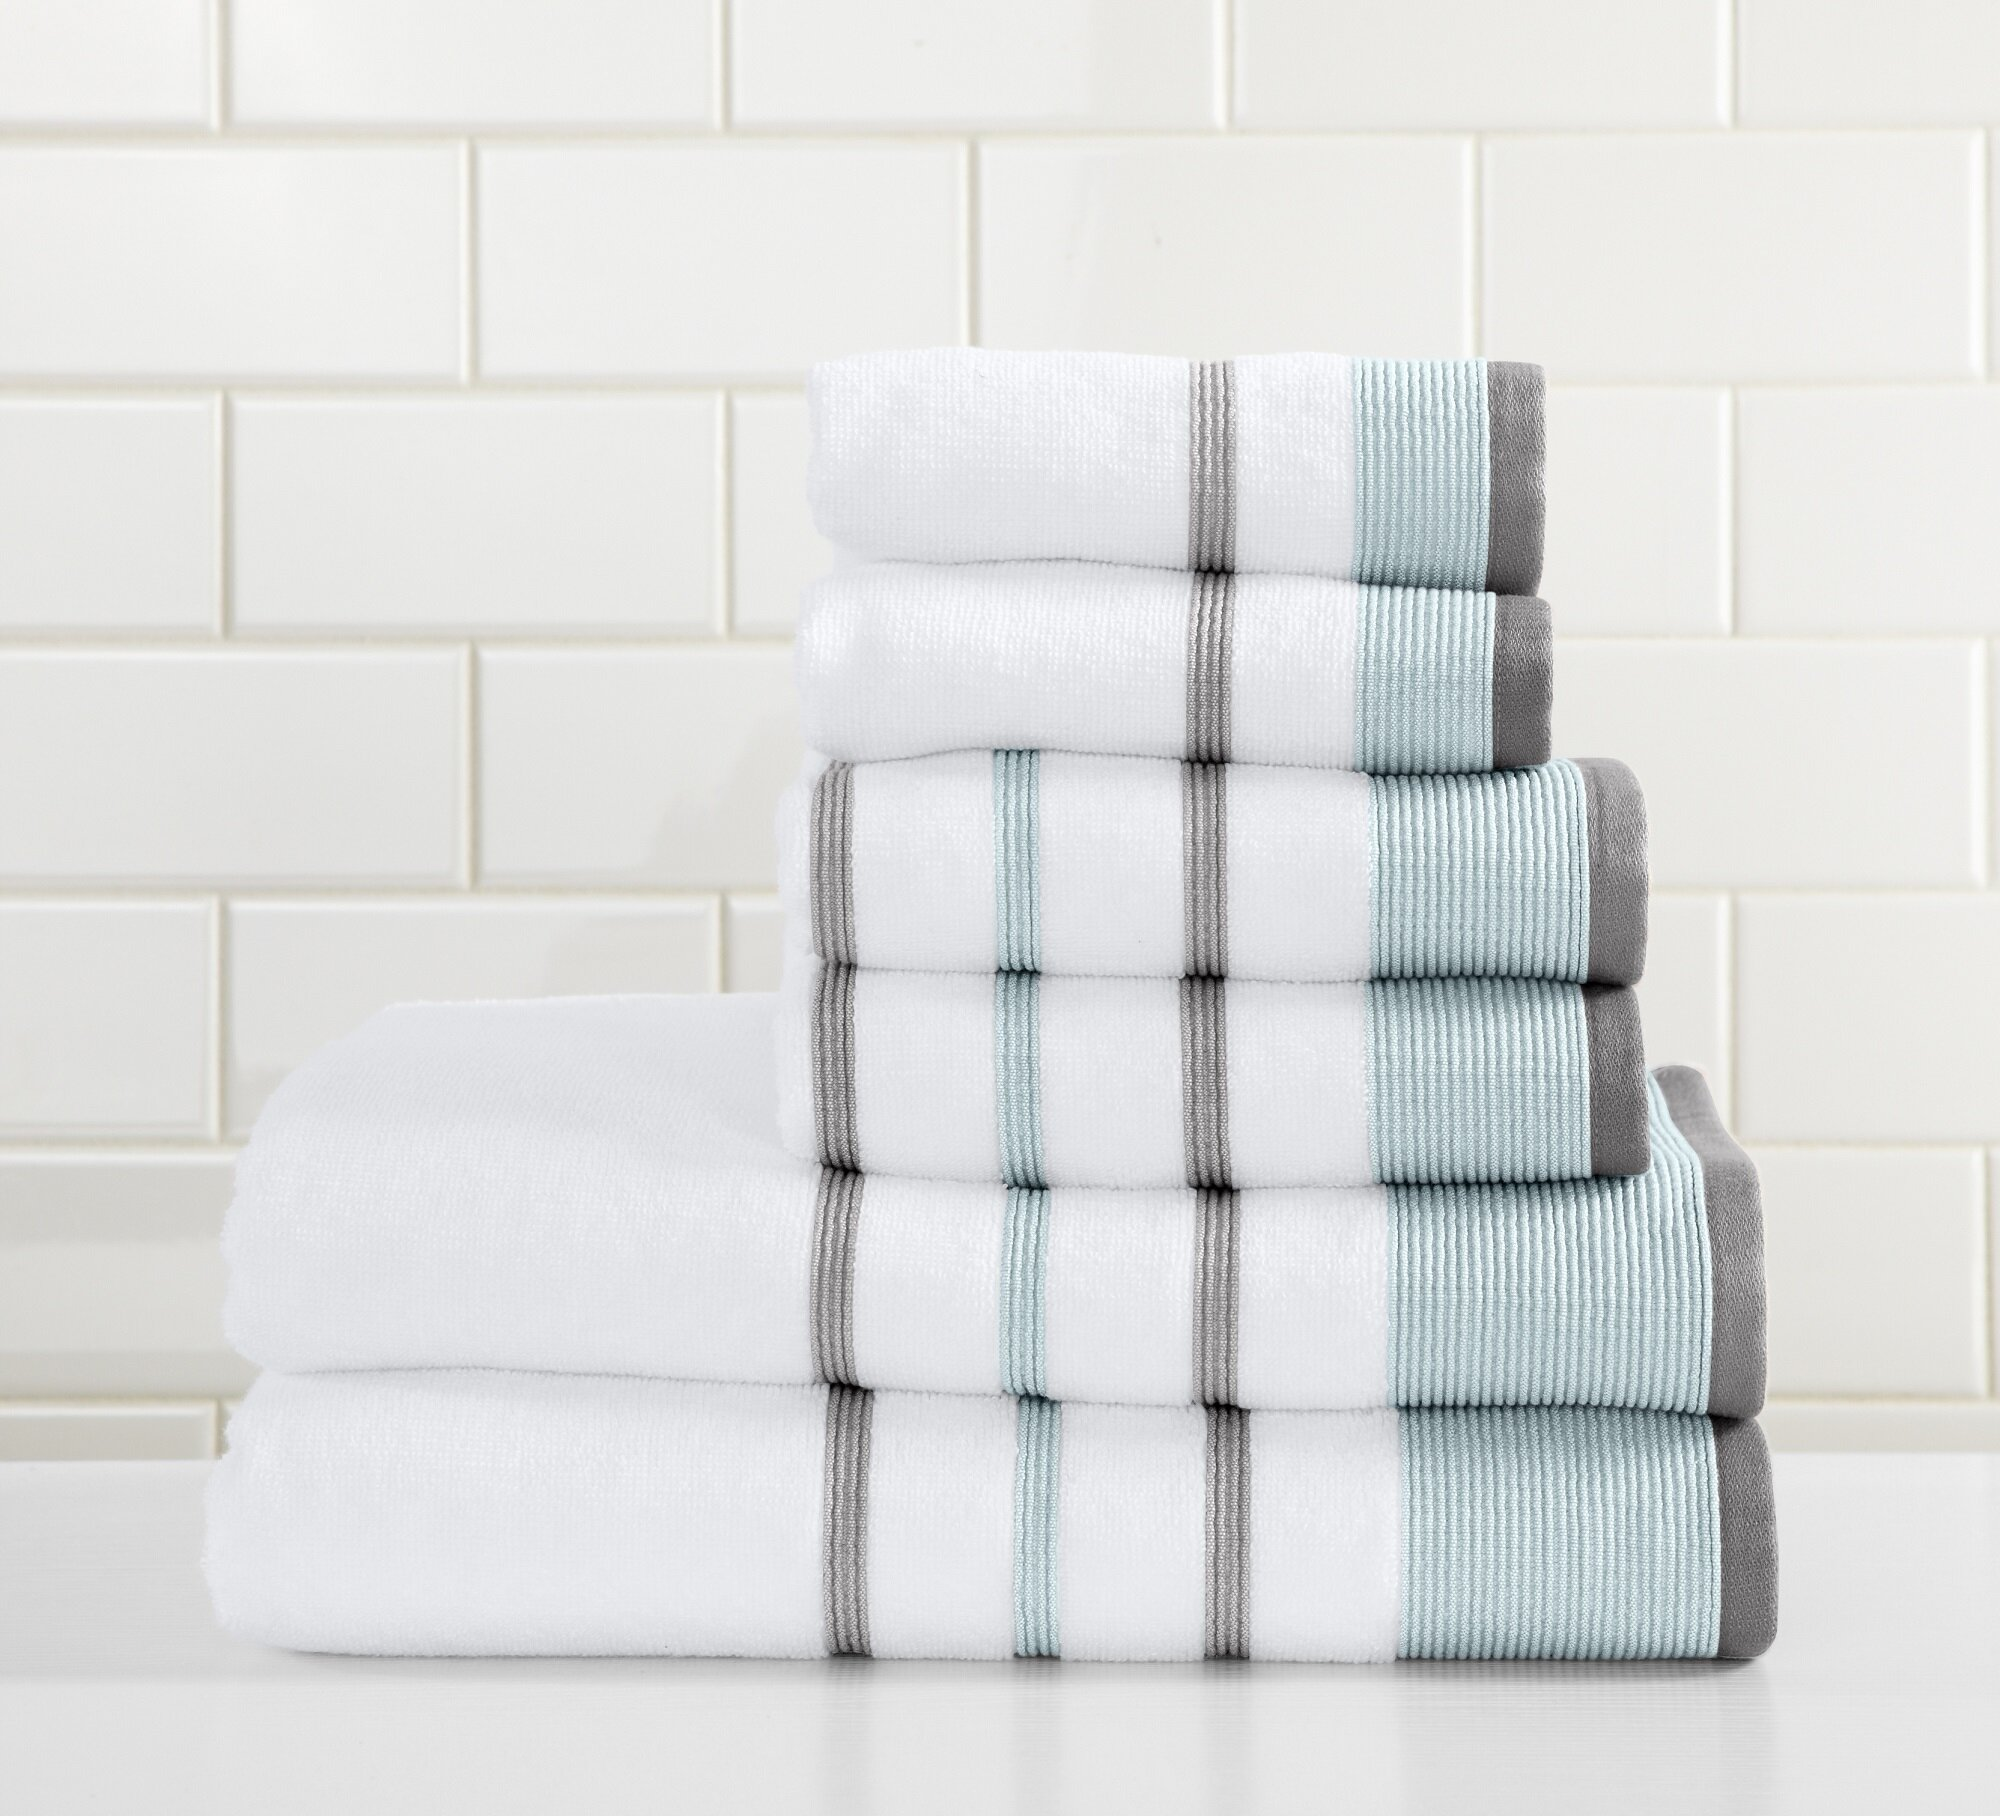 6 Piece 100 Cotton Bath Towel Set Extra Soft Absorbent Towels